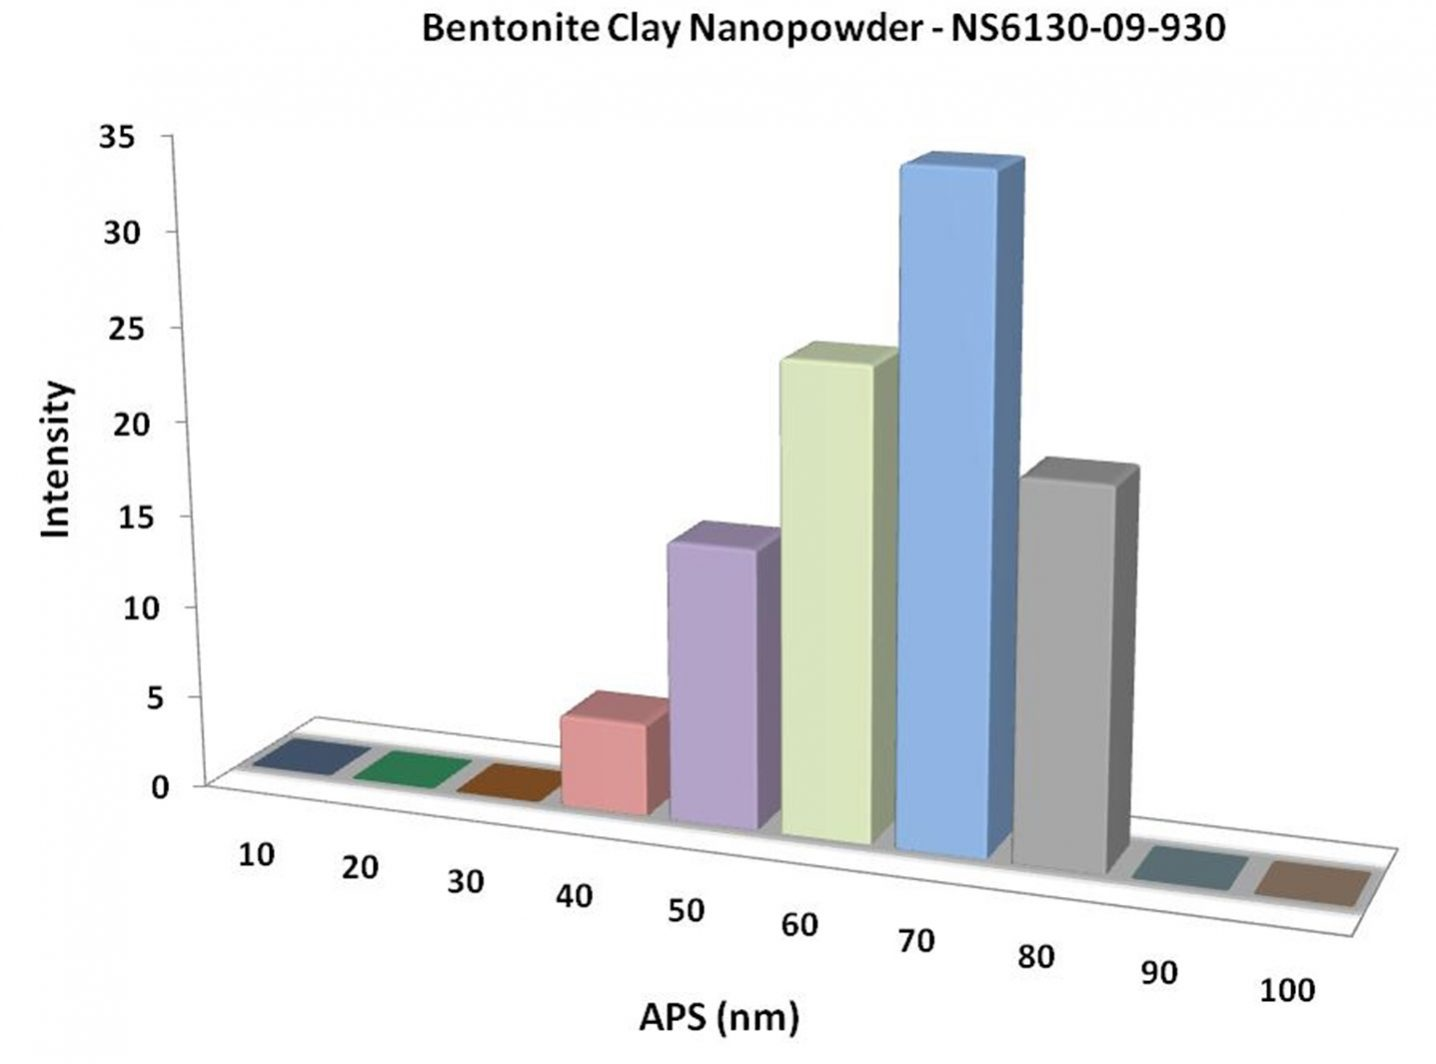 Particles Size Analysis - Bentonite Clay Nanopowder